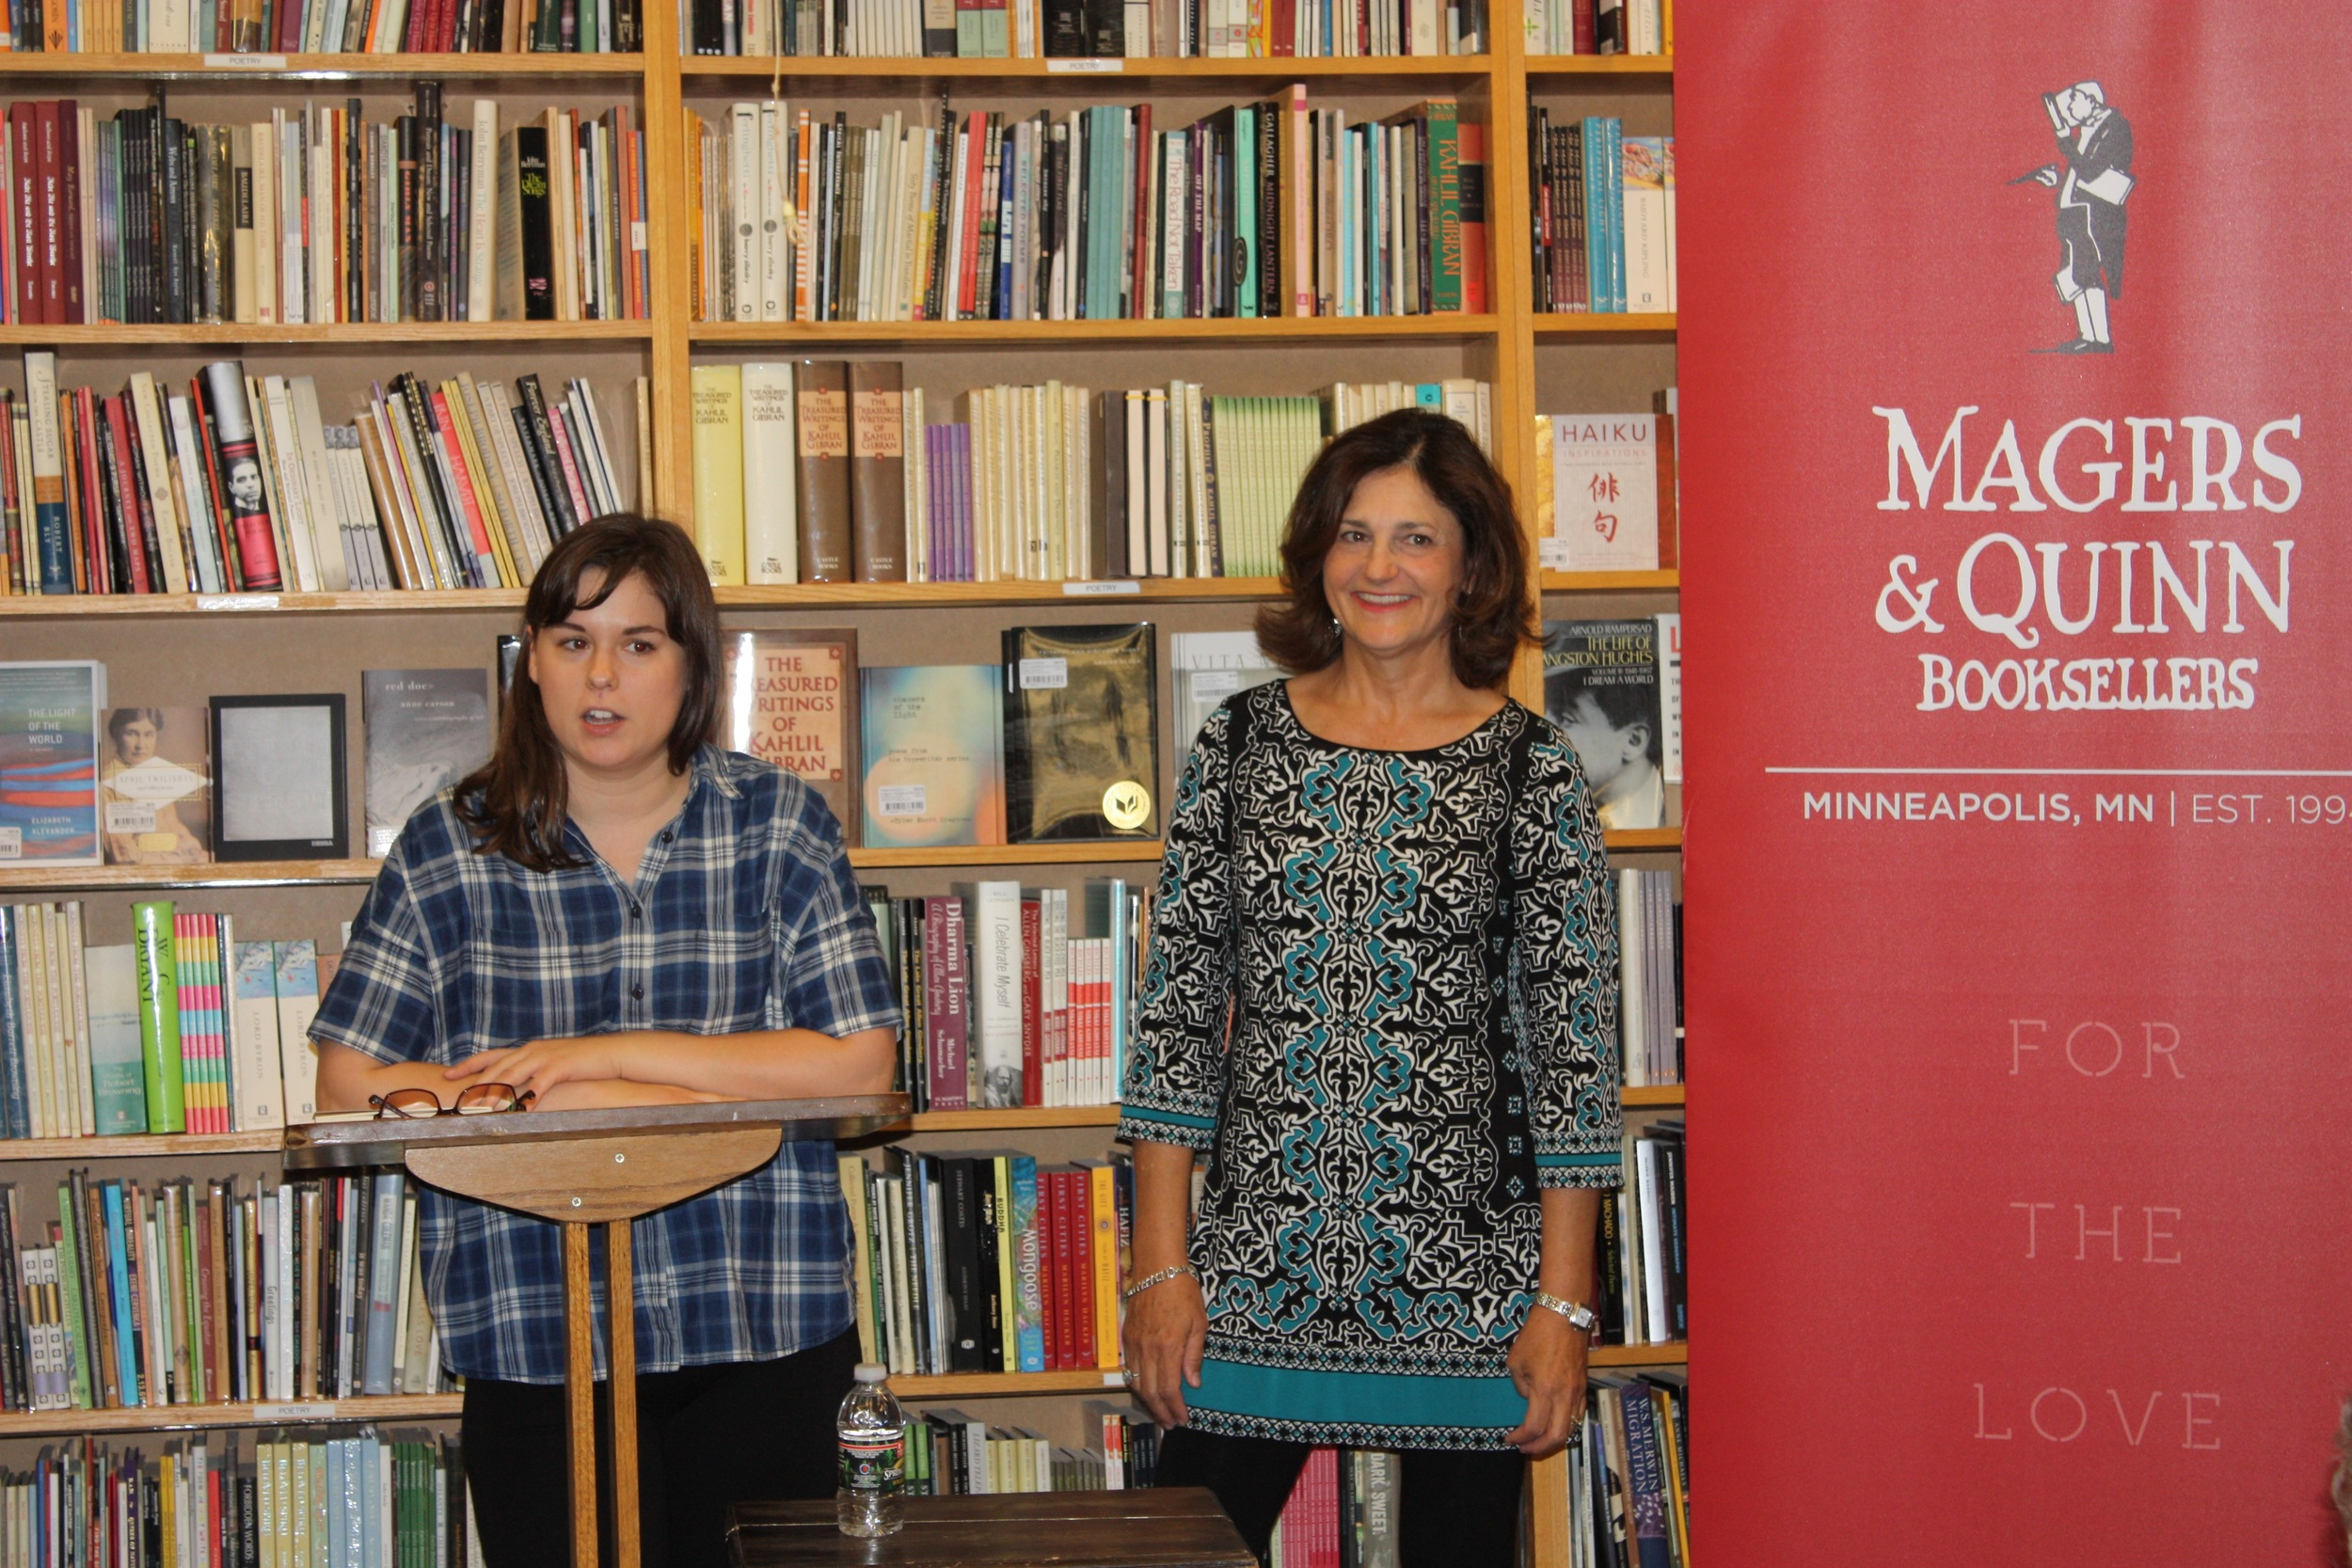 Magers & Quinn Booksellers Presentation in Minneapolis in July